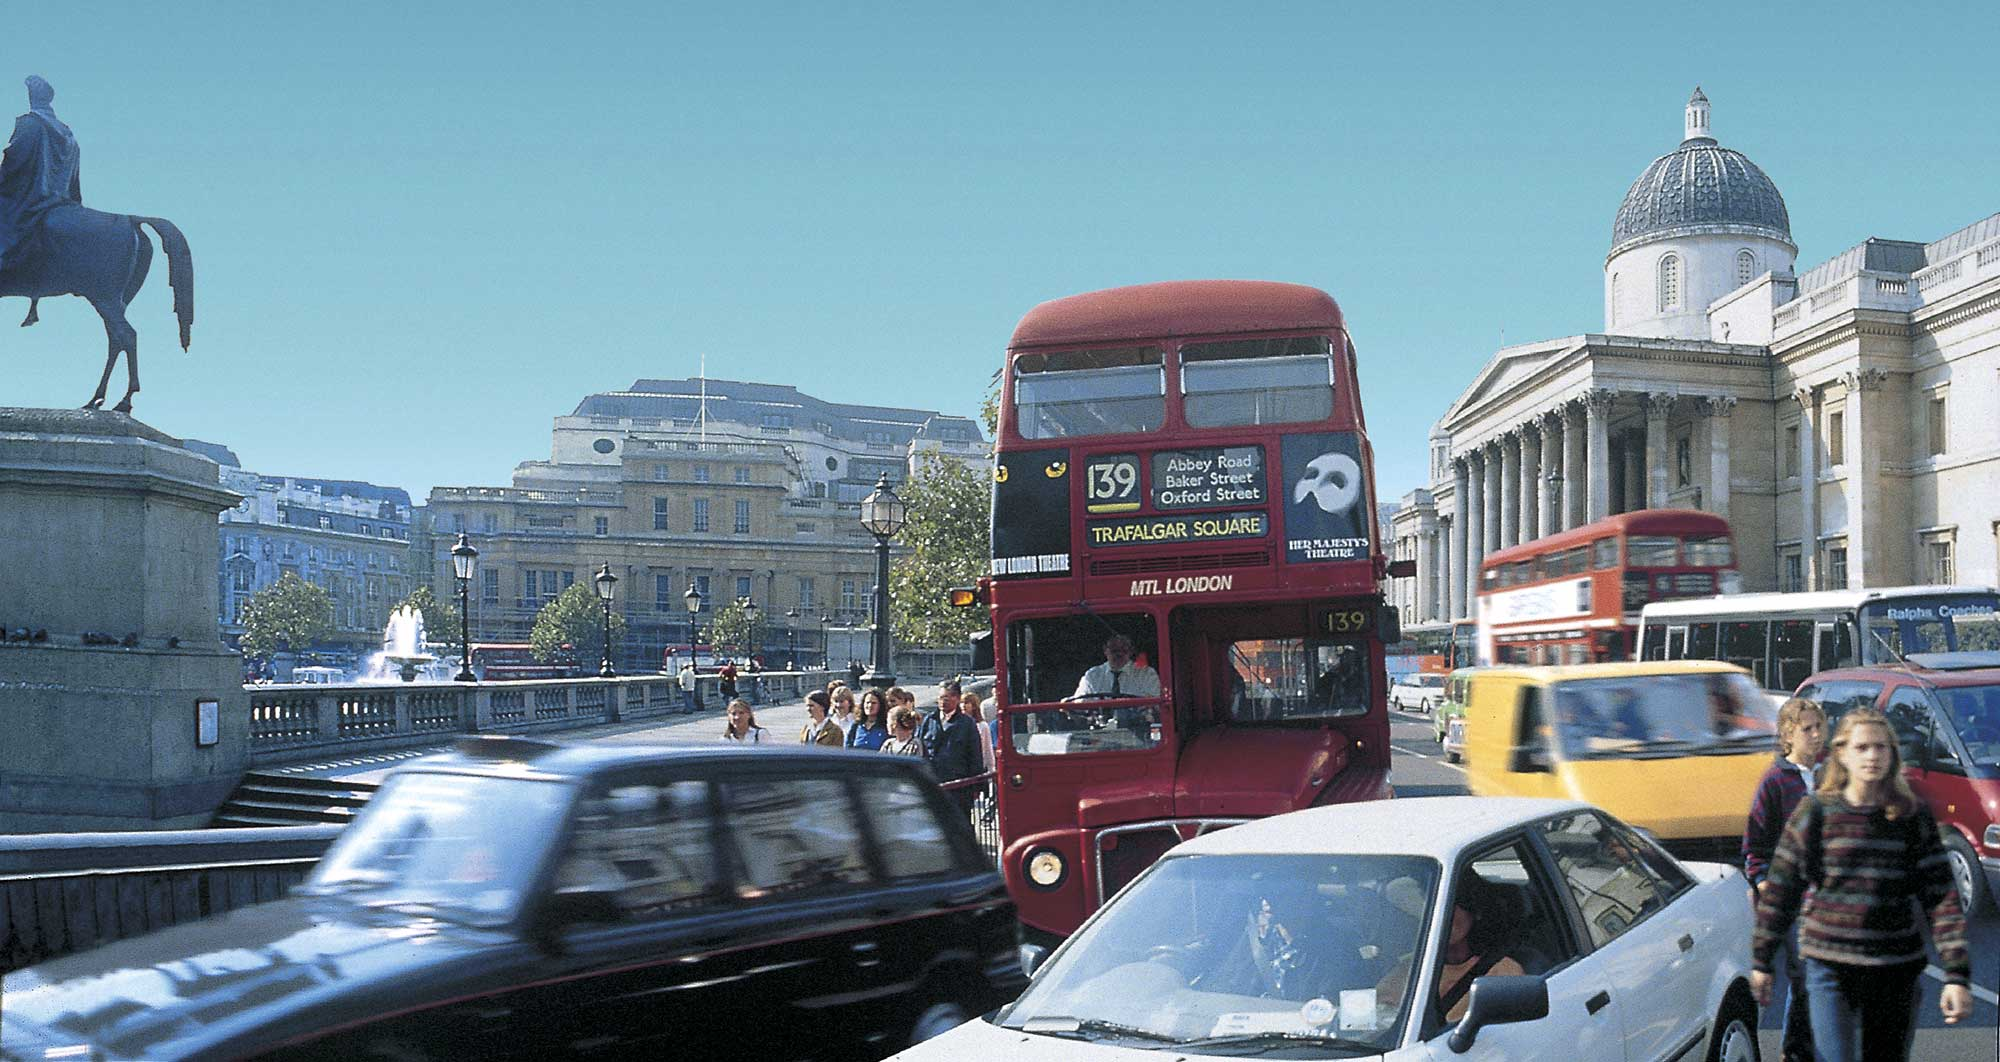 Trafalgar Square before its transformation (see next image for after). Credit Nigel Young, Foster + Partners